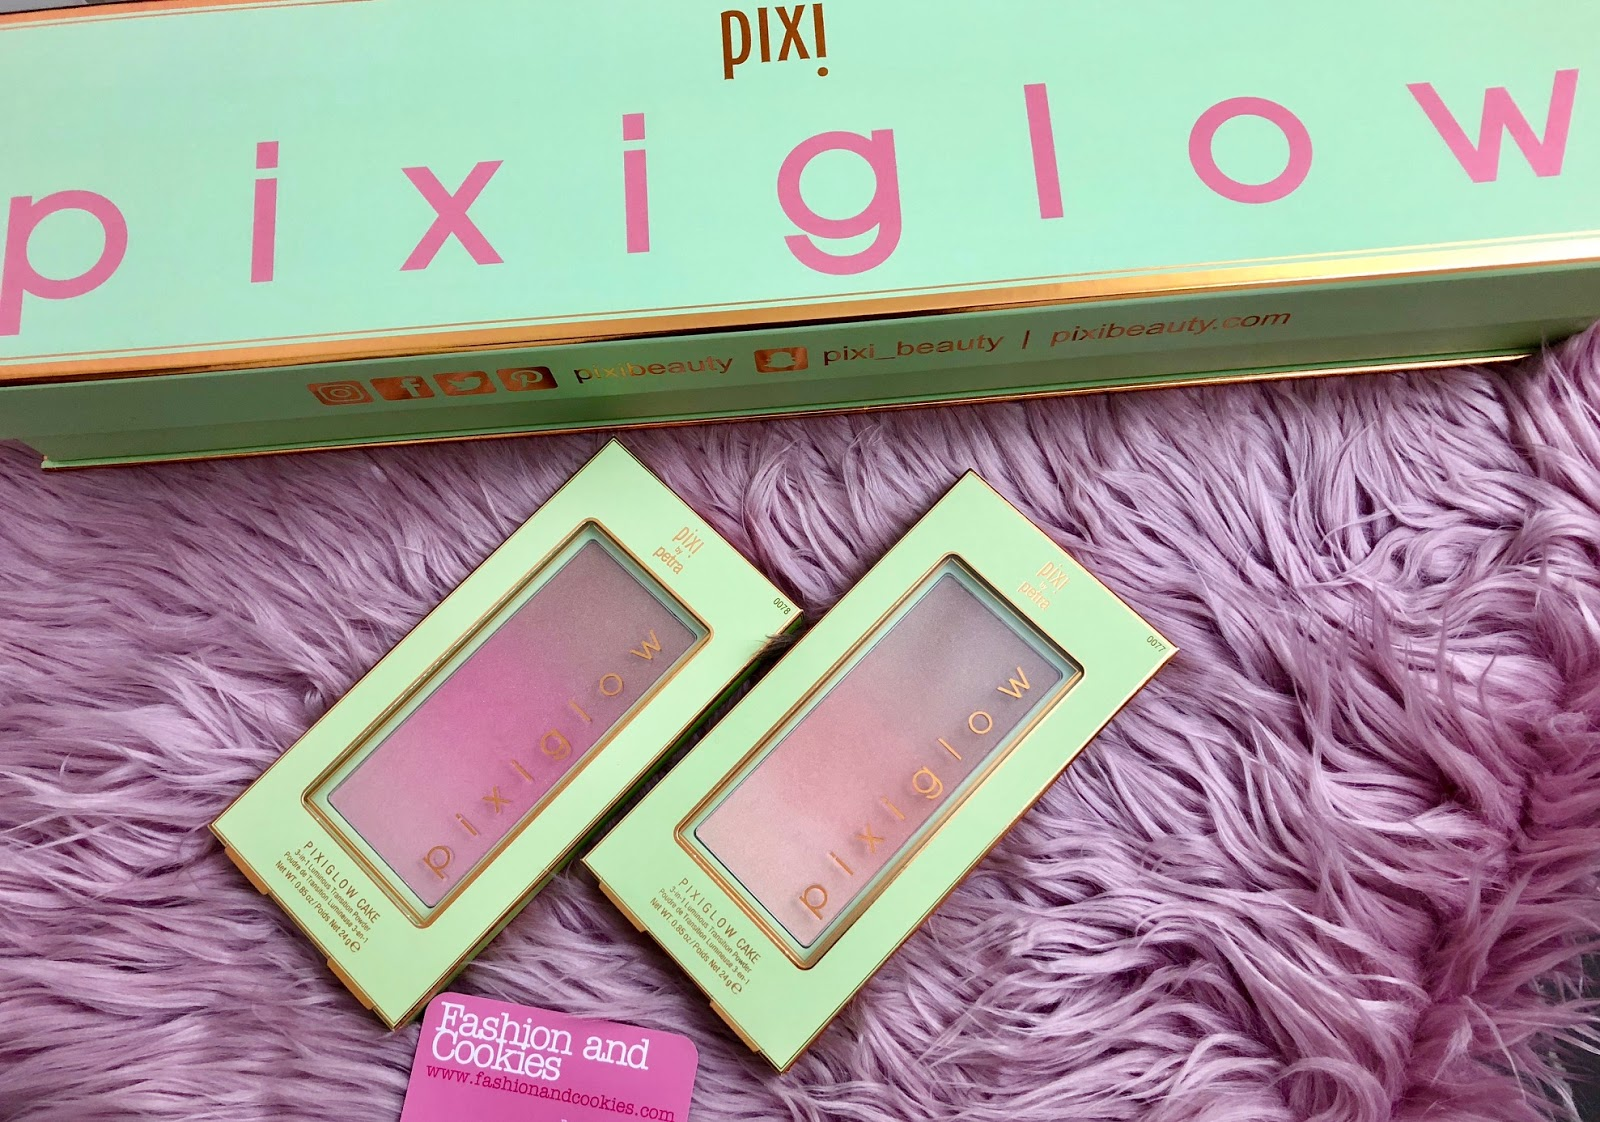 PixiGlow Cake palettes: new from Pixi Beauty for a radiant complexion on Fashion and Cookies beauty blog